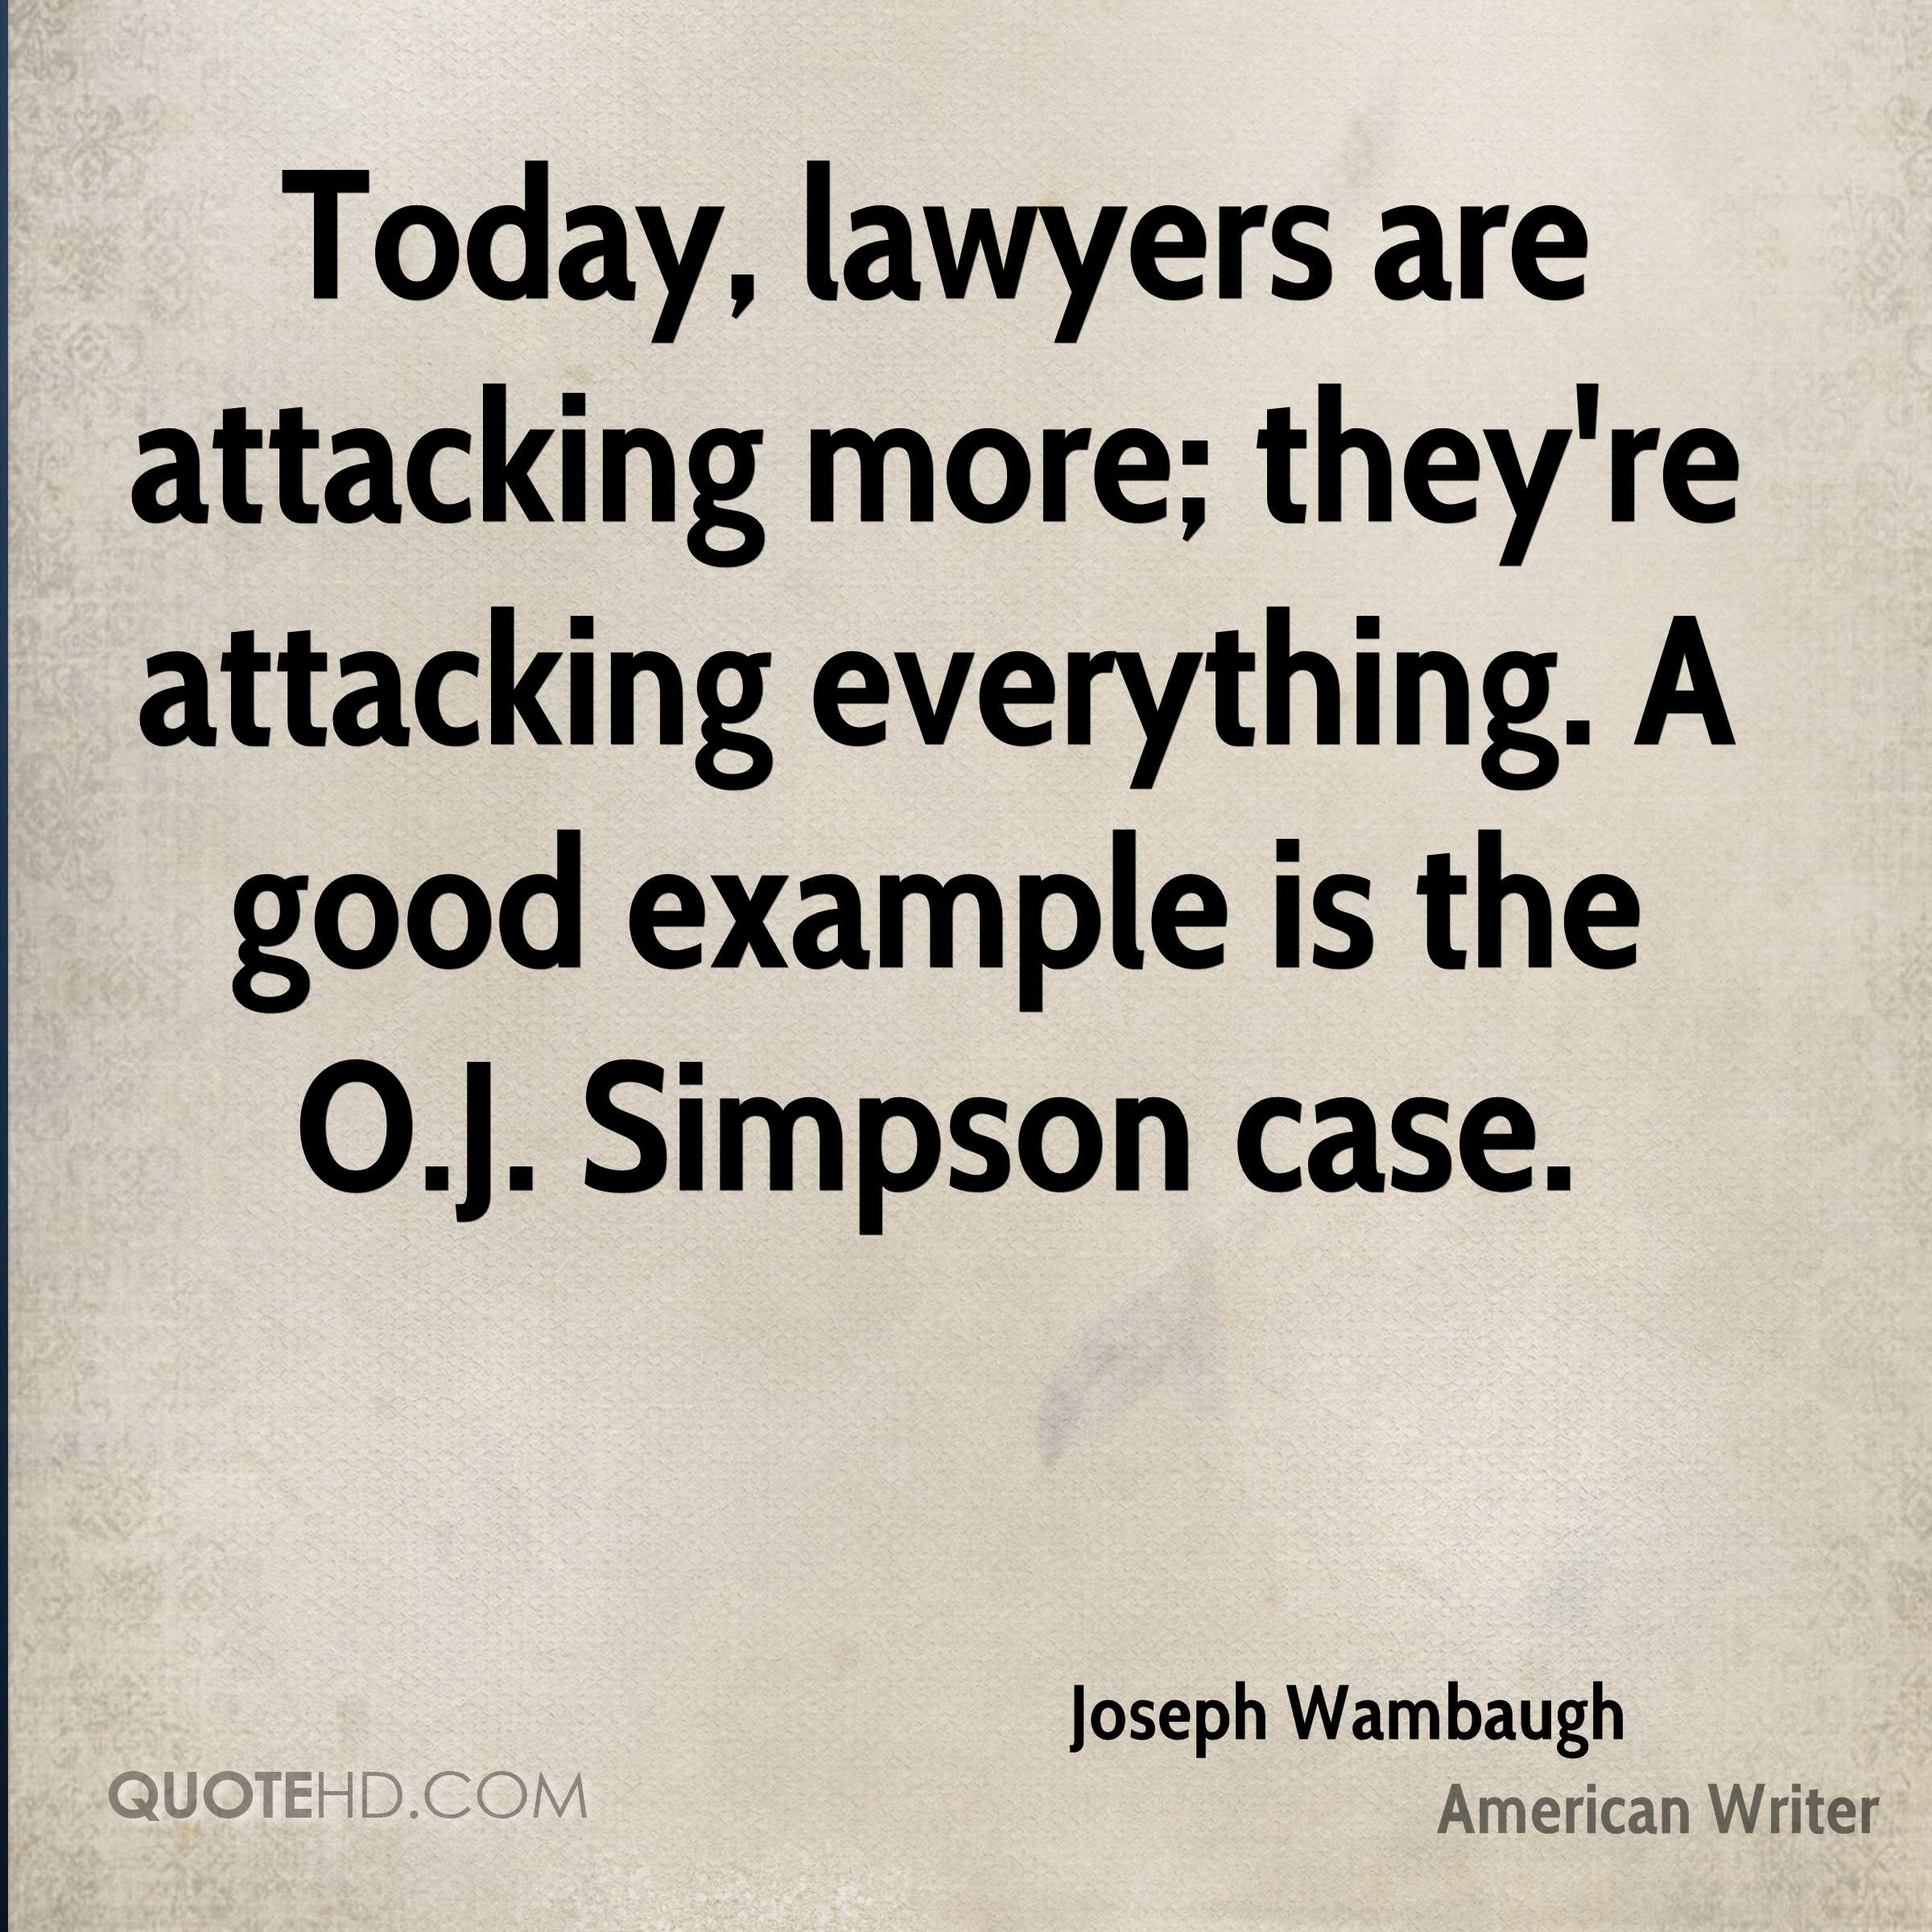 Today, lawyers are attacking more; they're attacking everything. A good example is the O.J. Simpson case.